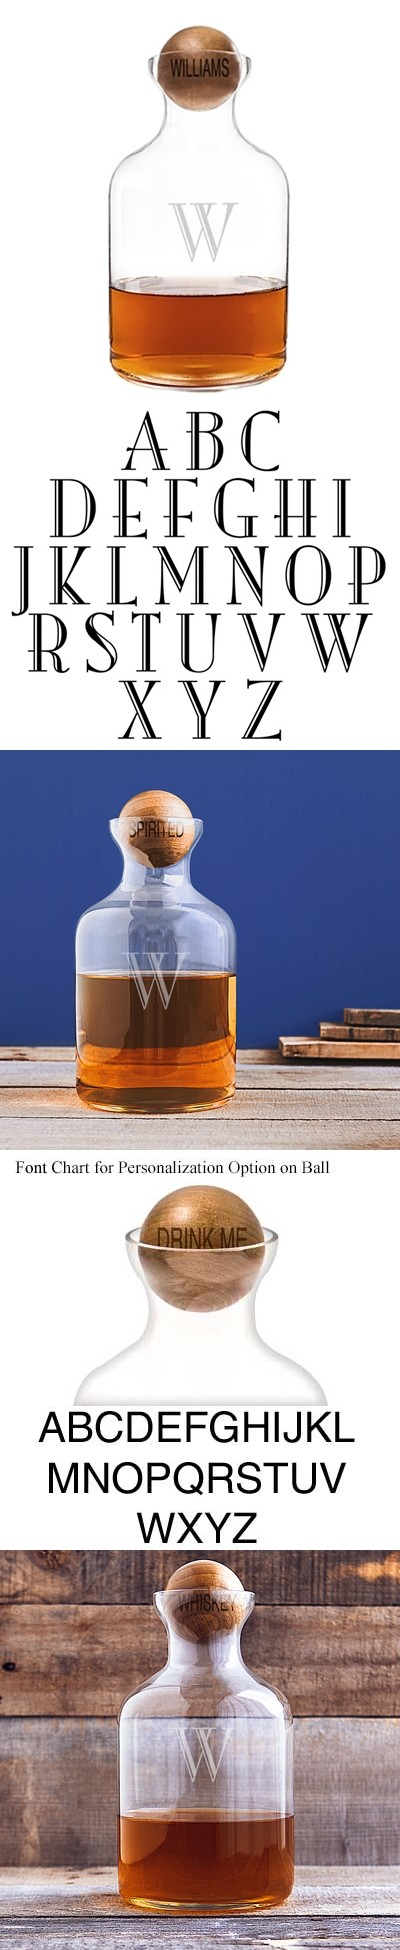 Personalized 56 oz. Round Glass Decanter with Wood Stopper